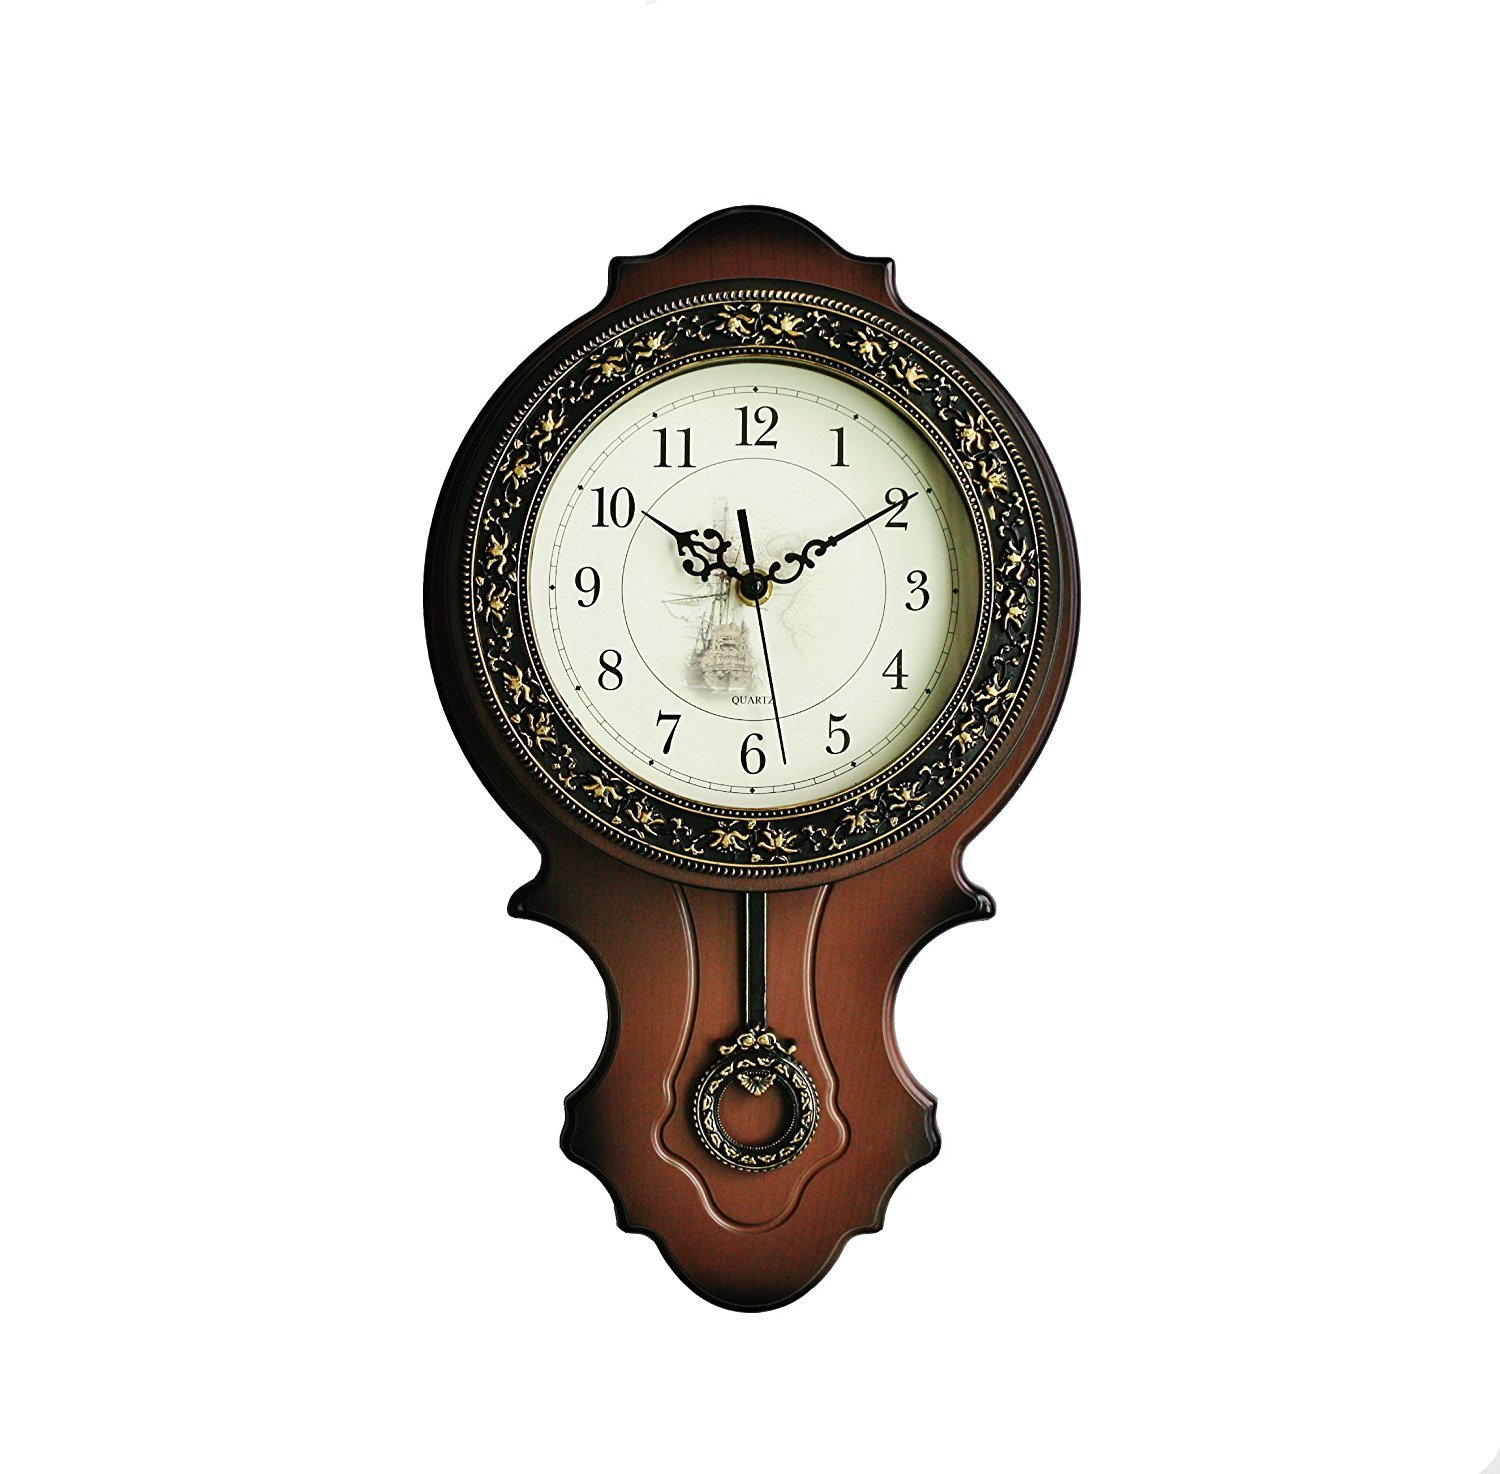 Amazon new world voyage simulated wood pendulum wall clock amazon new world voyage simulated wood pendulum wall clock quartz abs glass front cover plastic main structure antiquity european style amipublicfo Choice Image